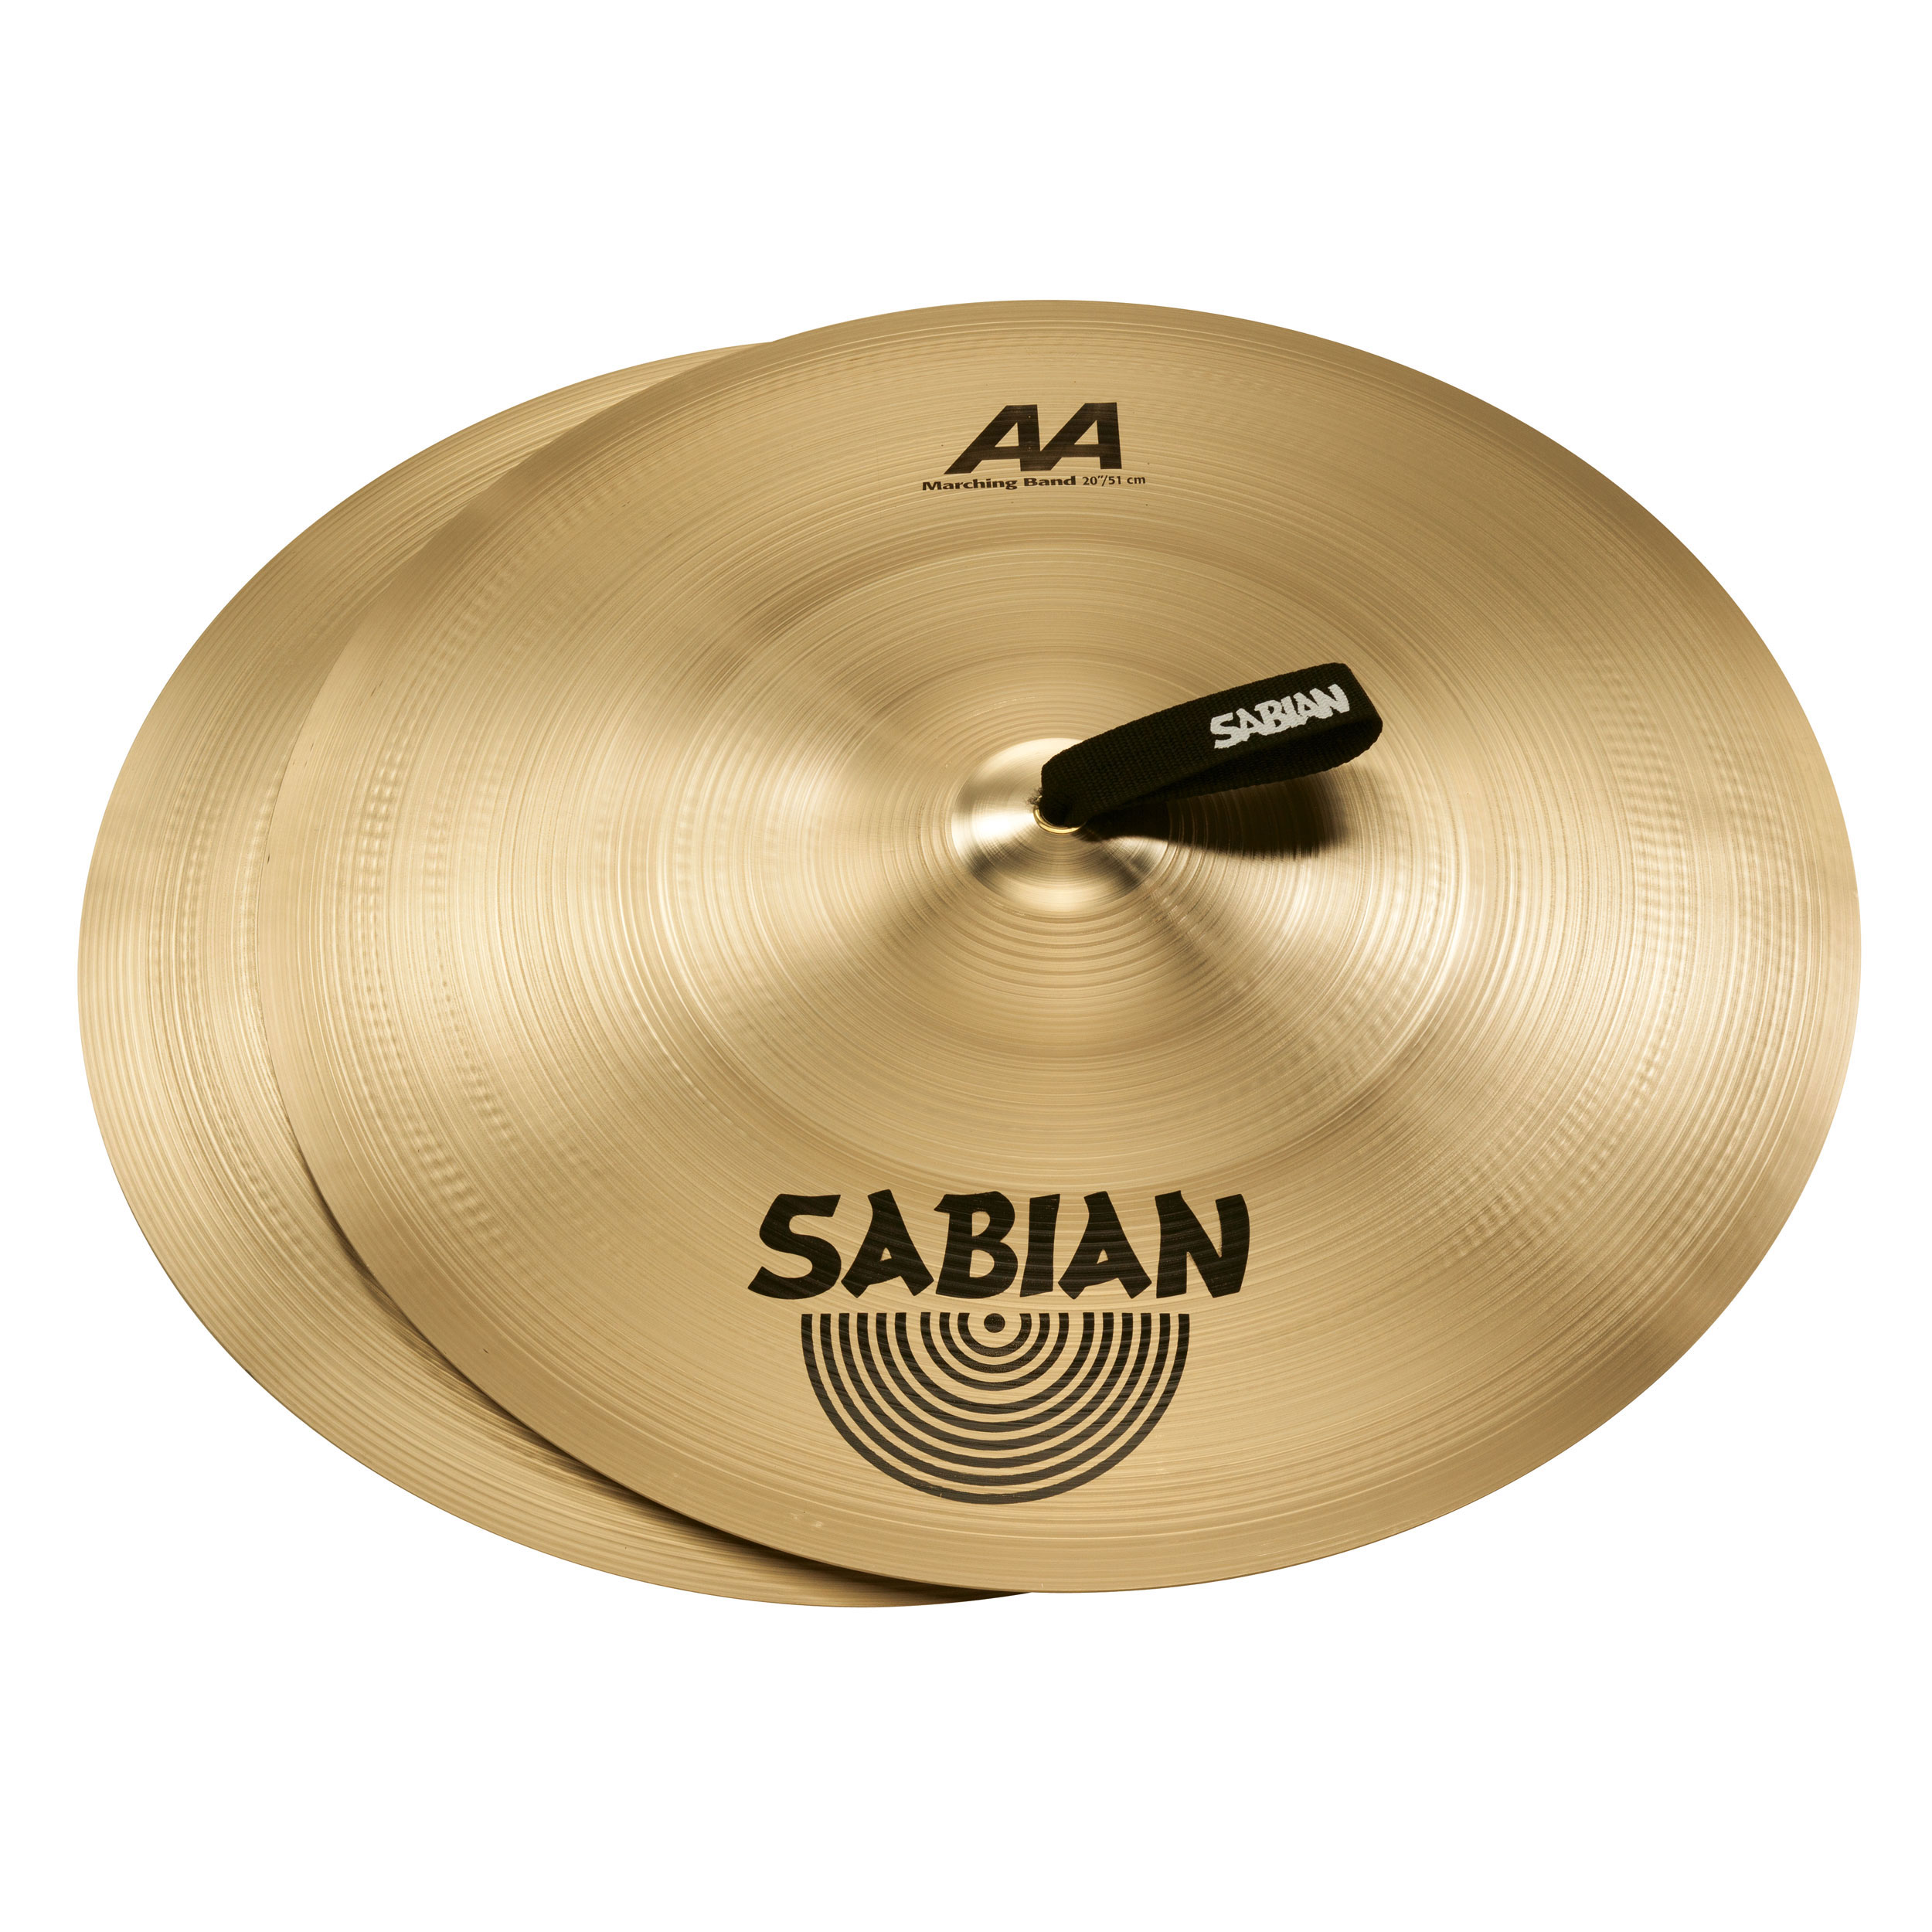 "Sabian 20"" AA Marching Band Hand Cymbal Pair"